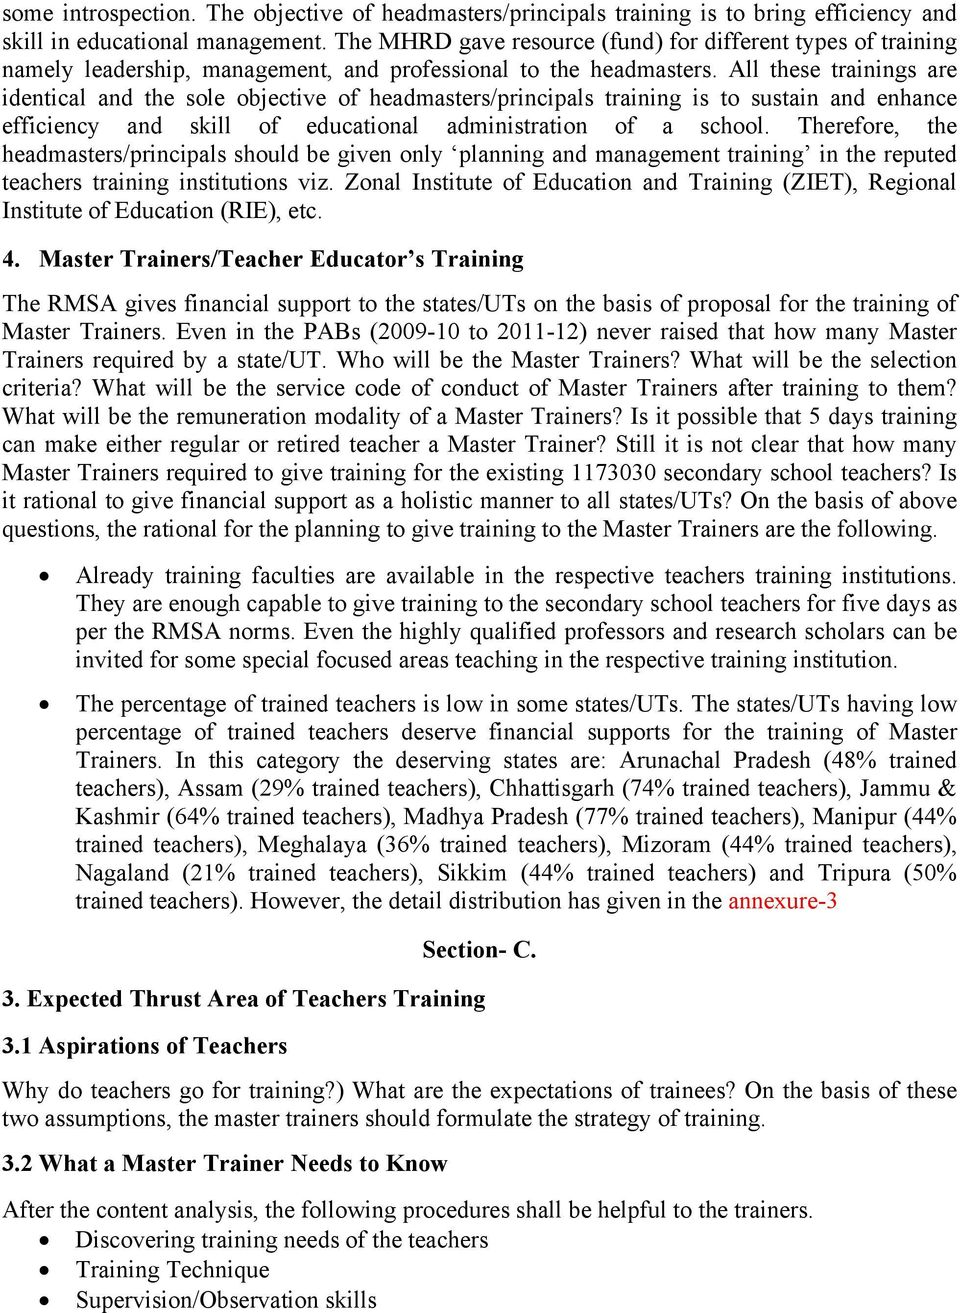 Planning for Teachers, Headmasters/Principals and Master